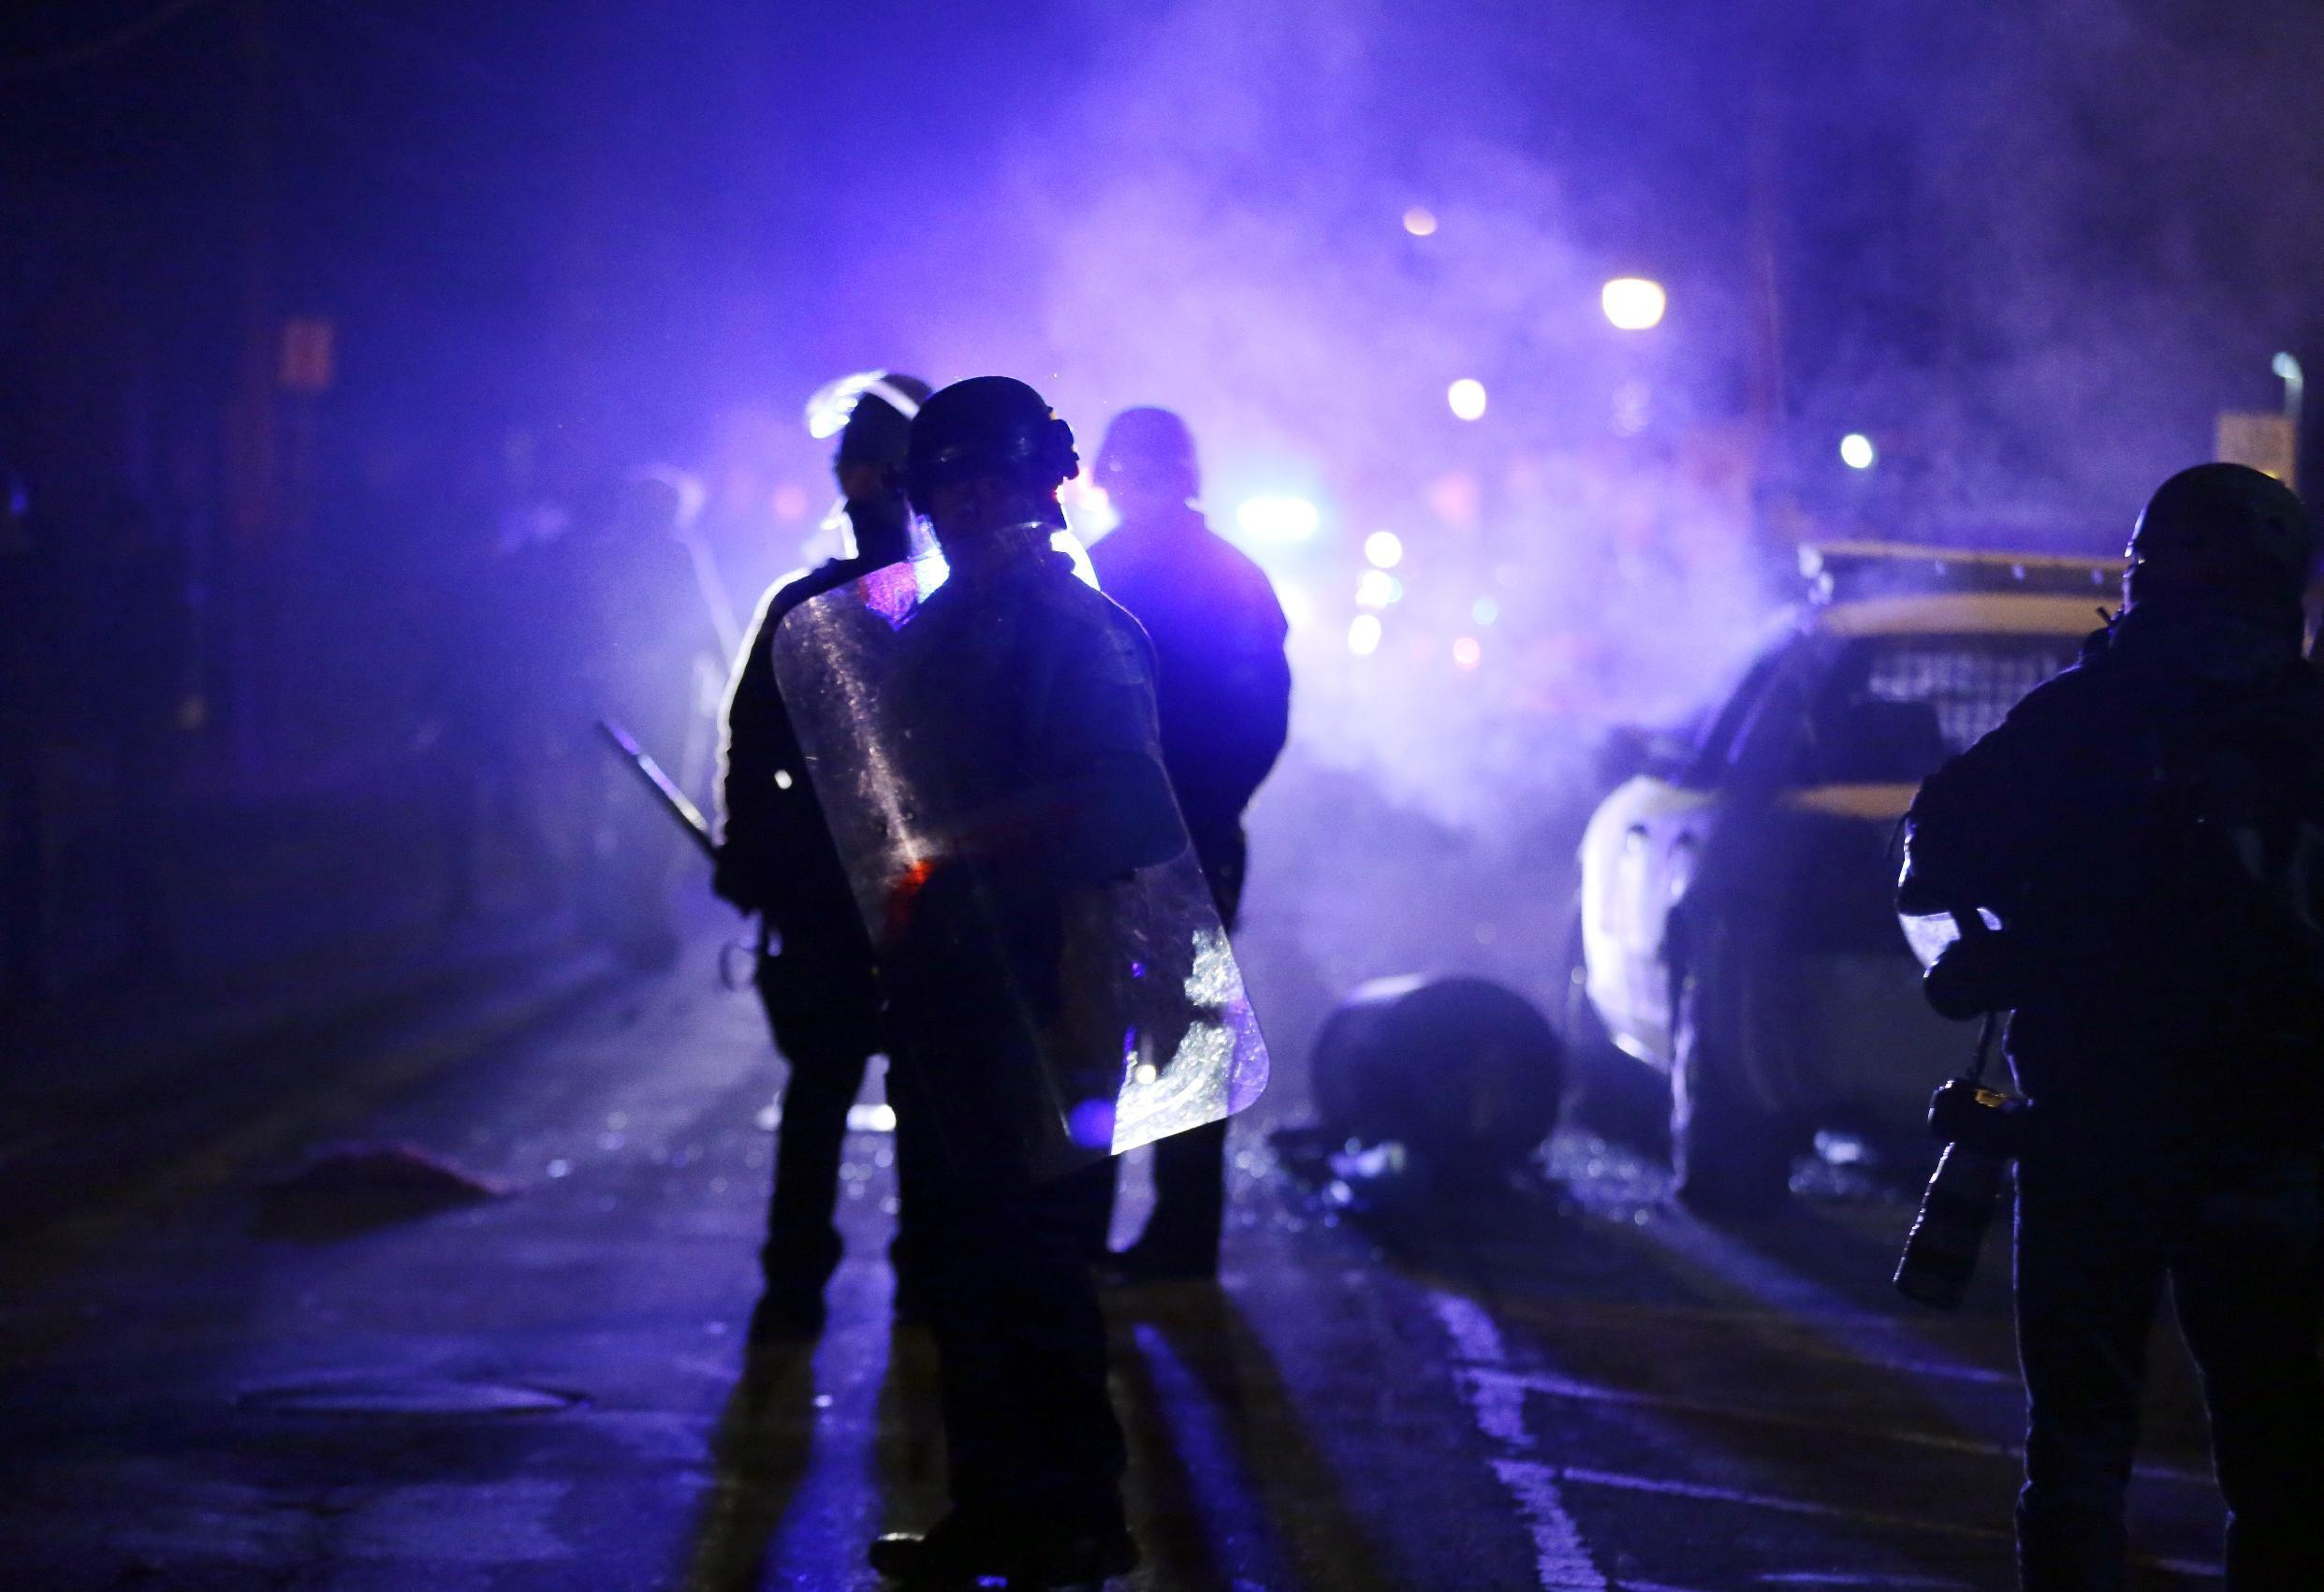 New Ferguson report offers lessons on handling protests